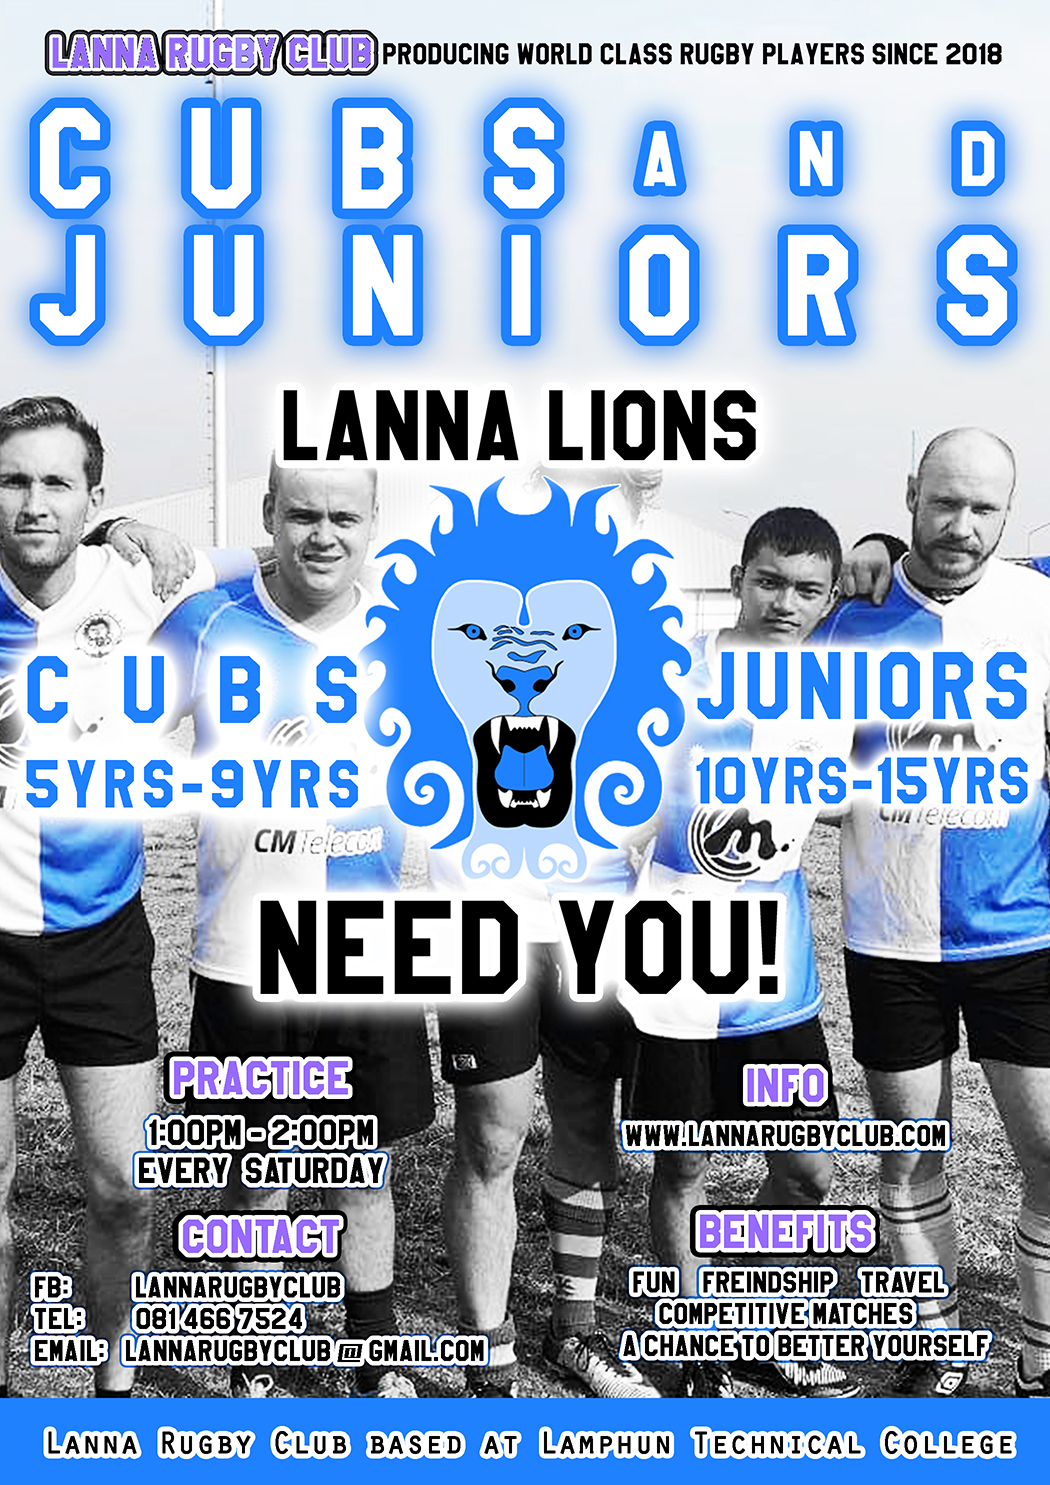 CUBS AND JUNIOR RUGBY LANNA RUGBY CLUB